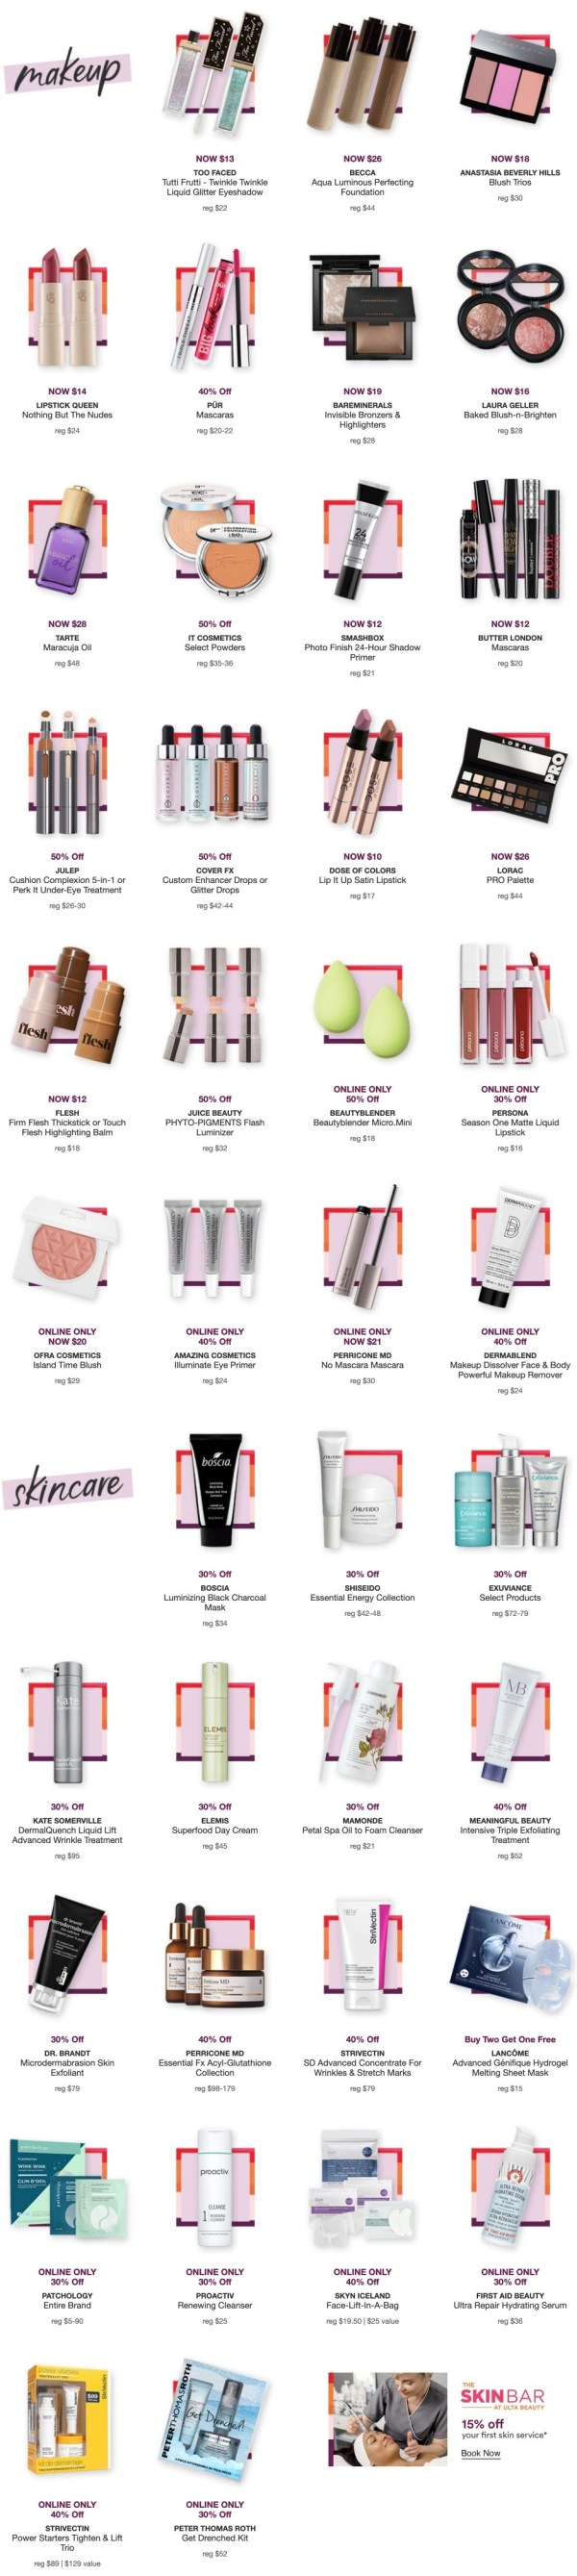 Ulta: FREE 4 Pc Urban Decay Gift w/$50 purchase + MORE